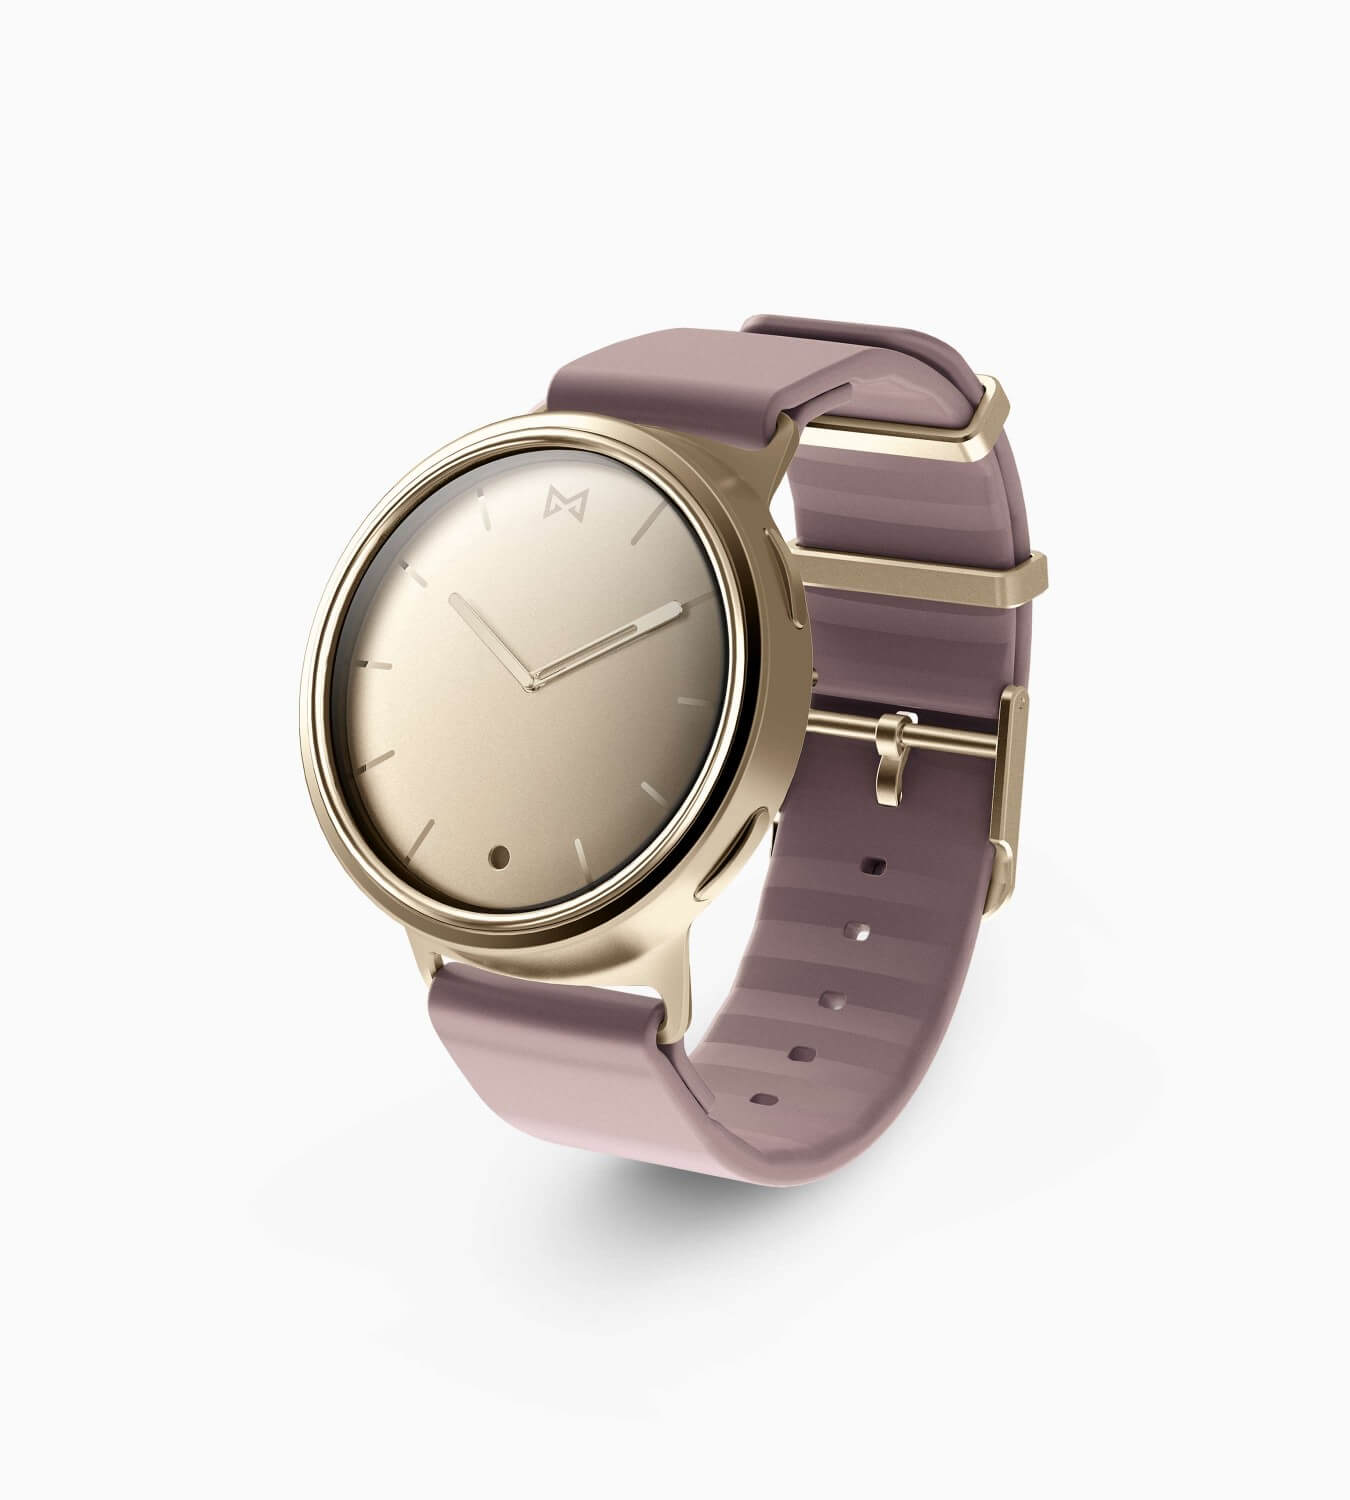 stylish amp affordable watches for ladies the diamond glow